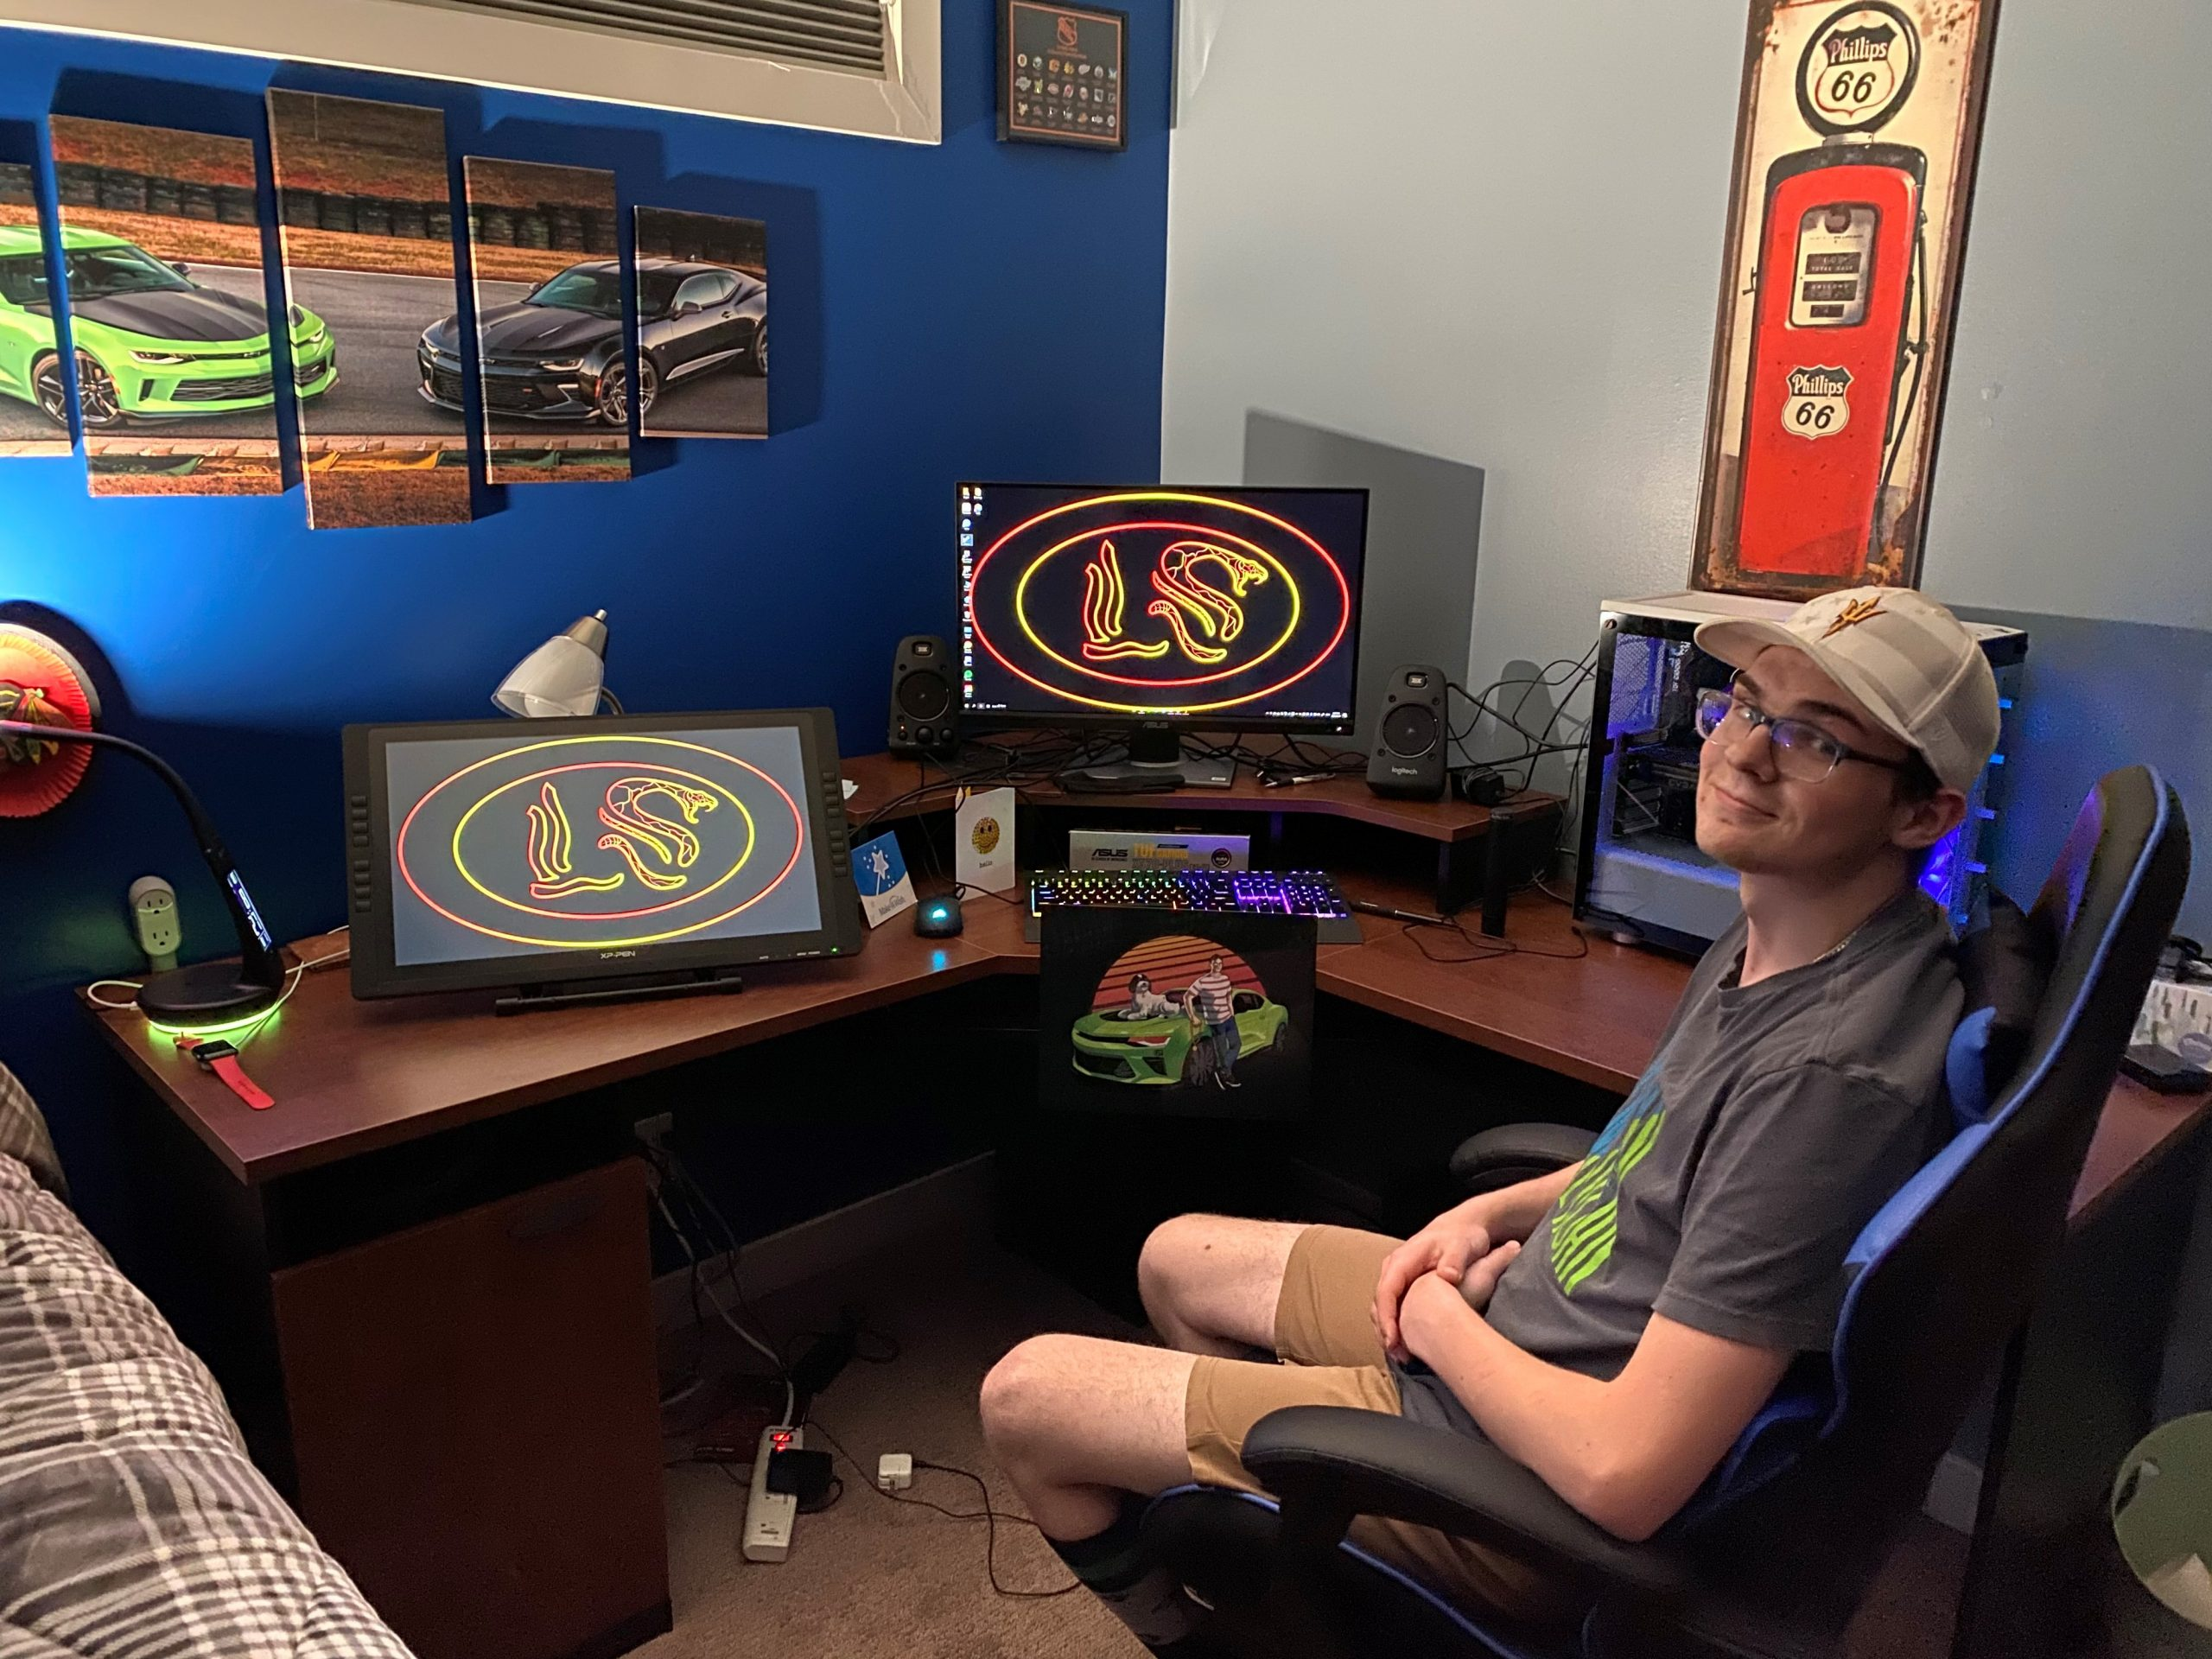 Some Happy News Amidst the Chaos: TRINUS Helps Make-A-Wish Recipient's Dream Wish Come True